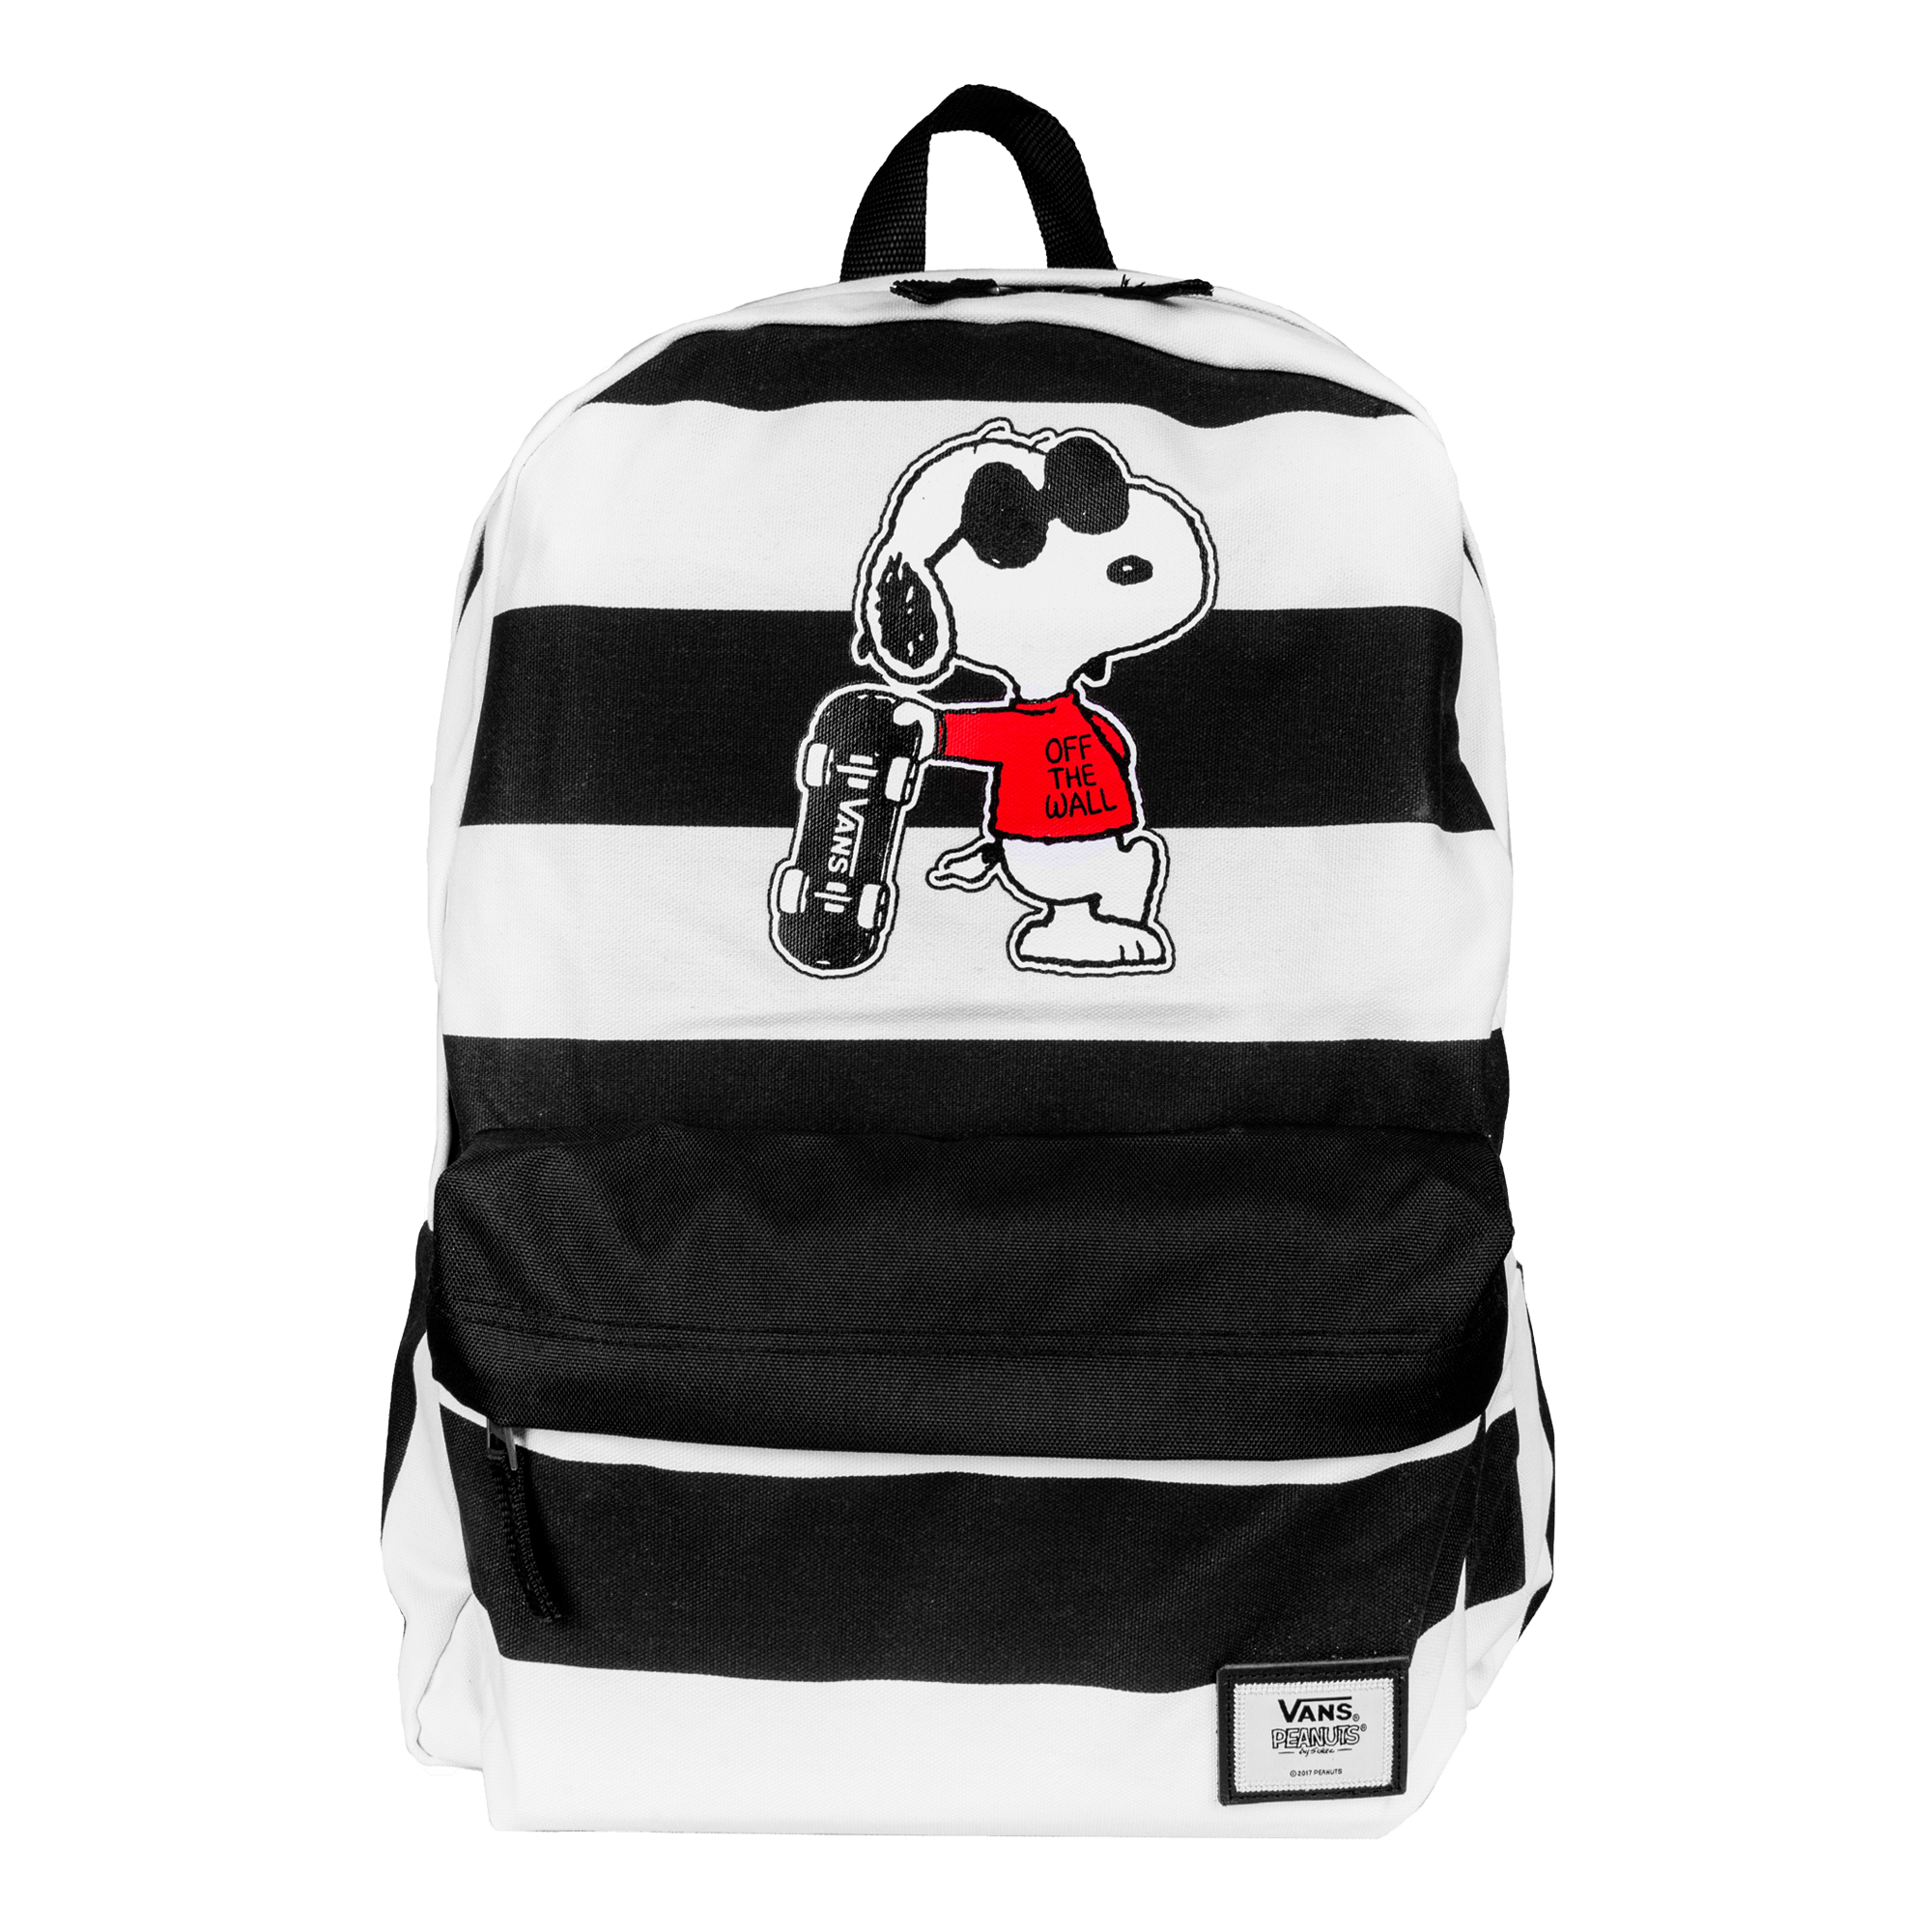 Vans Realm Backpack Peanuts black white - Zaini